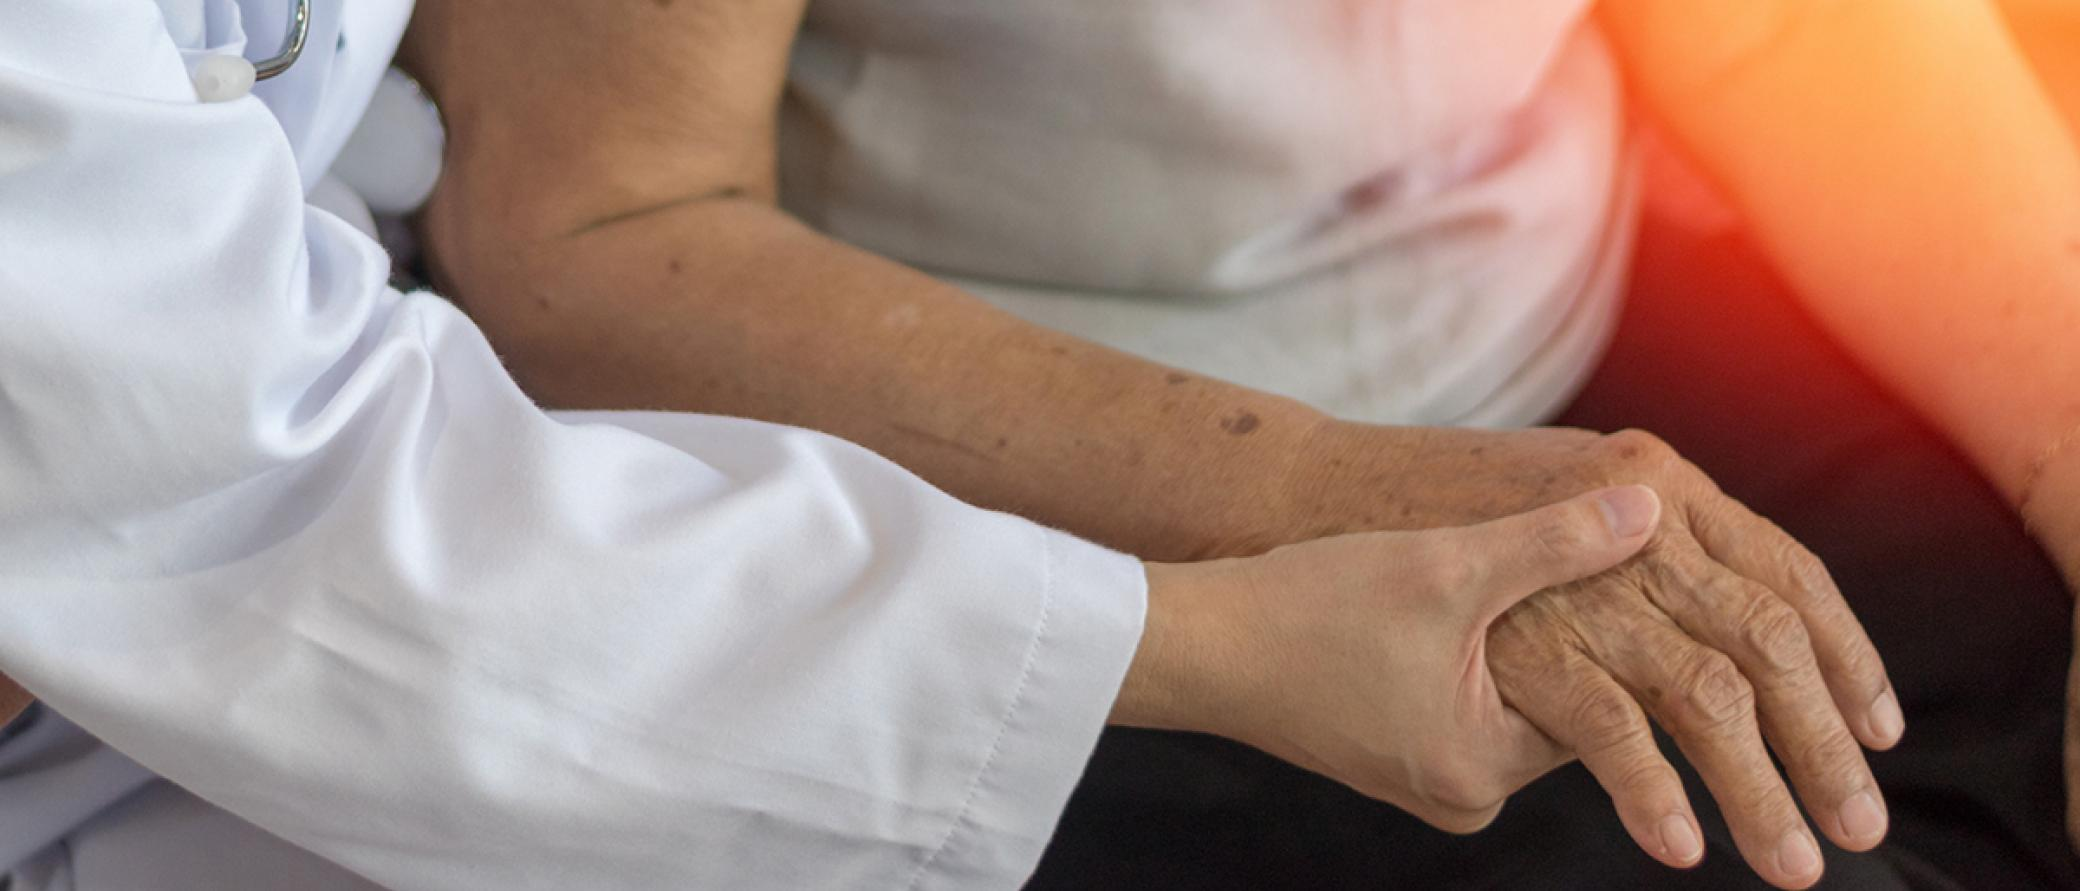 Doctor is holding elderly lady's hand